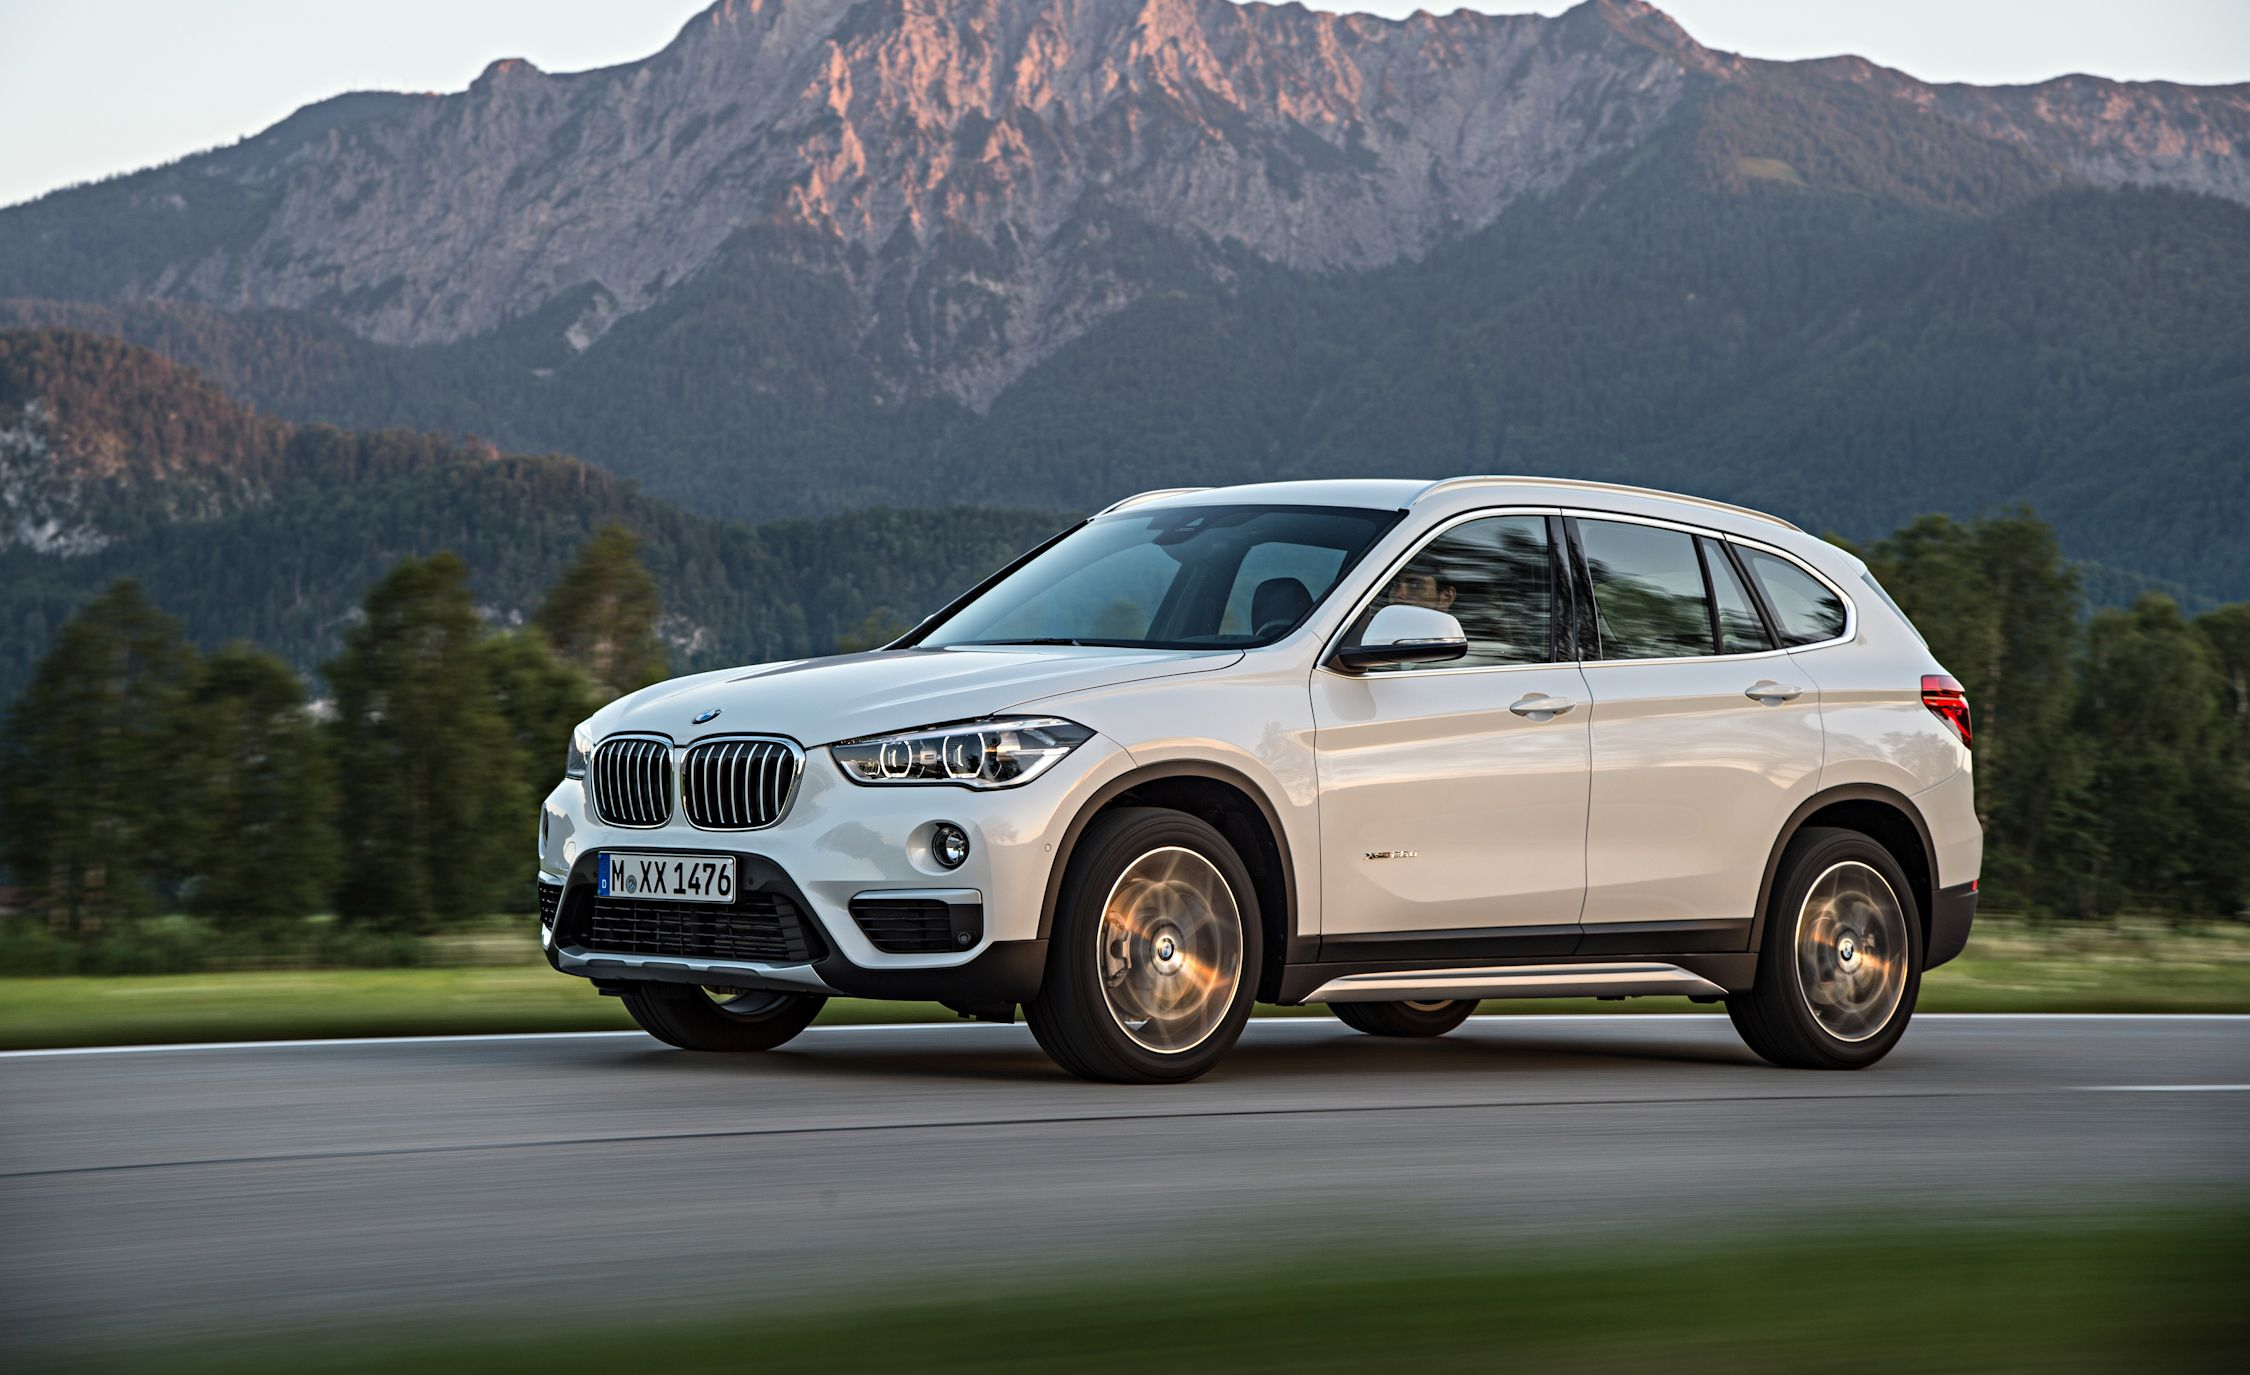 2019 Bmw X1 Reviews Bmw X1 Price Photos And Specs